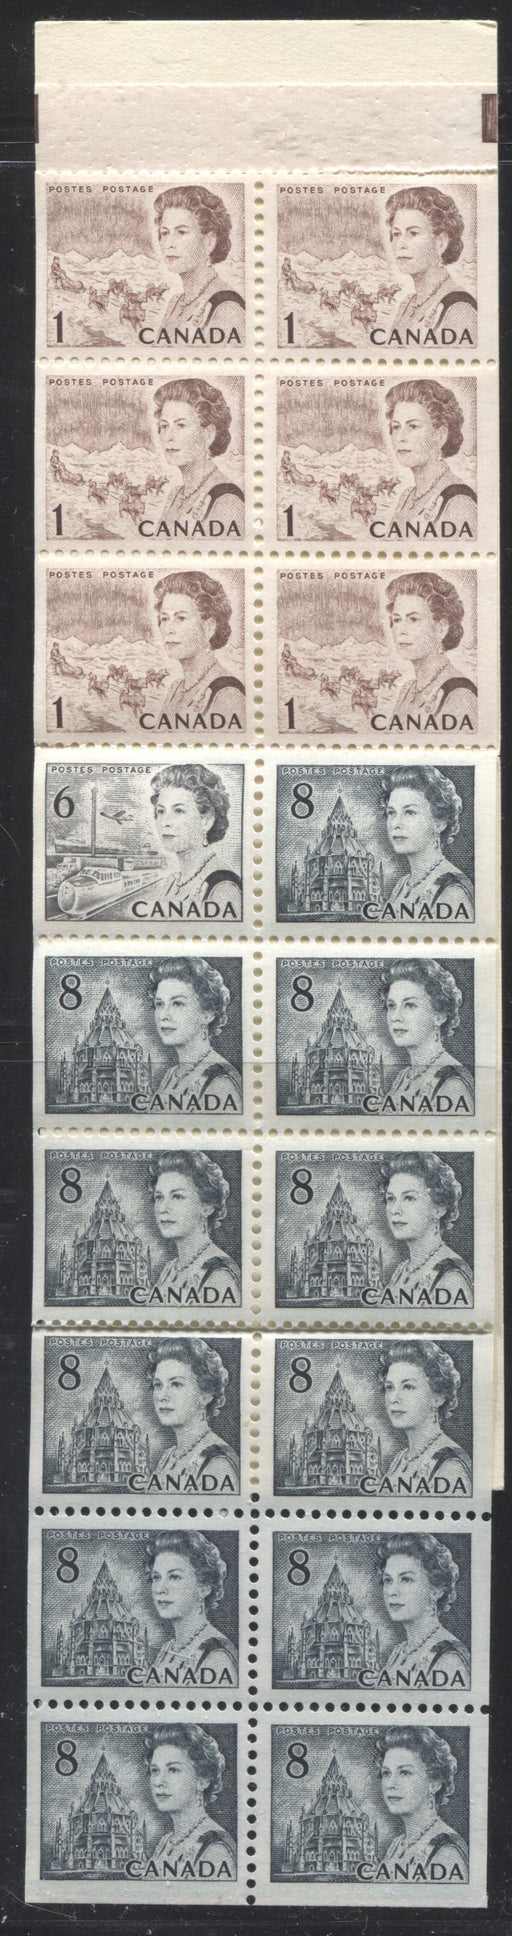 Canada #BK70a 1967-1973 Centennial Issue, Complete $1 Counter Booklet, Horizontal Wove Paper, Dull Paper Brixton Chrome VF-80 Untagged